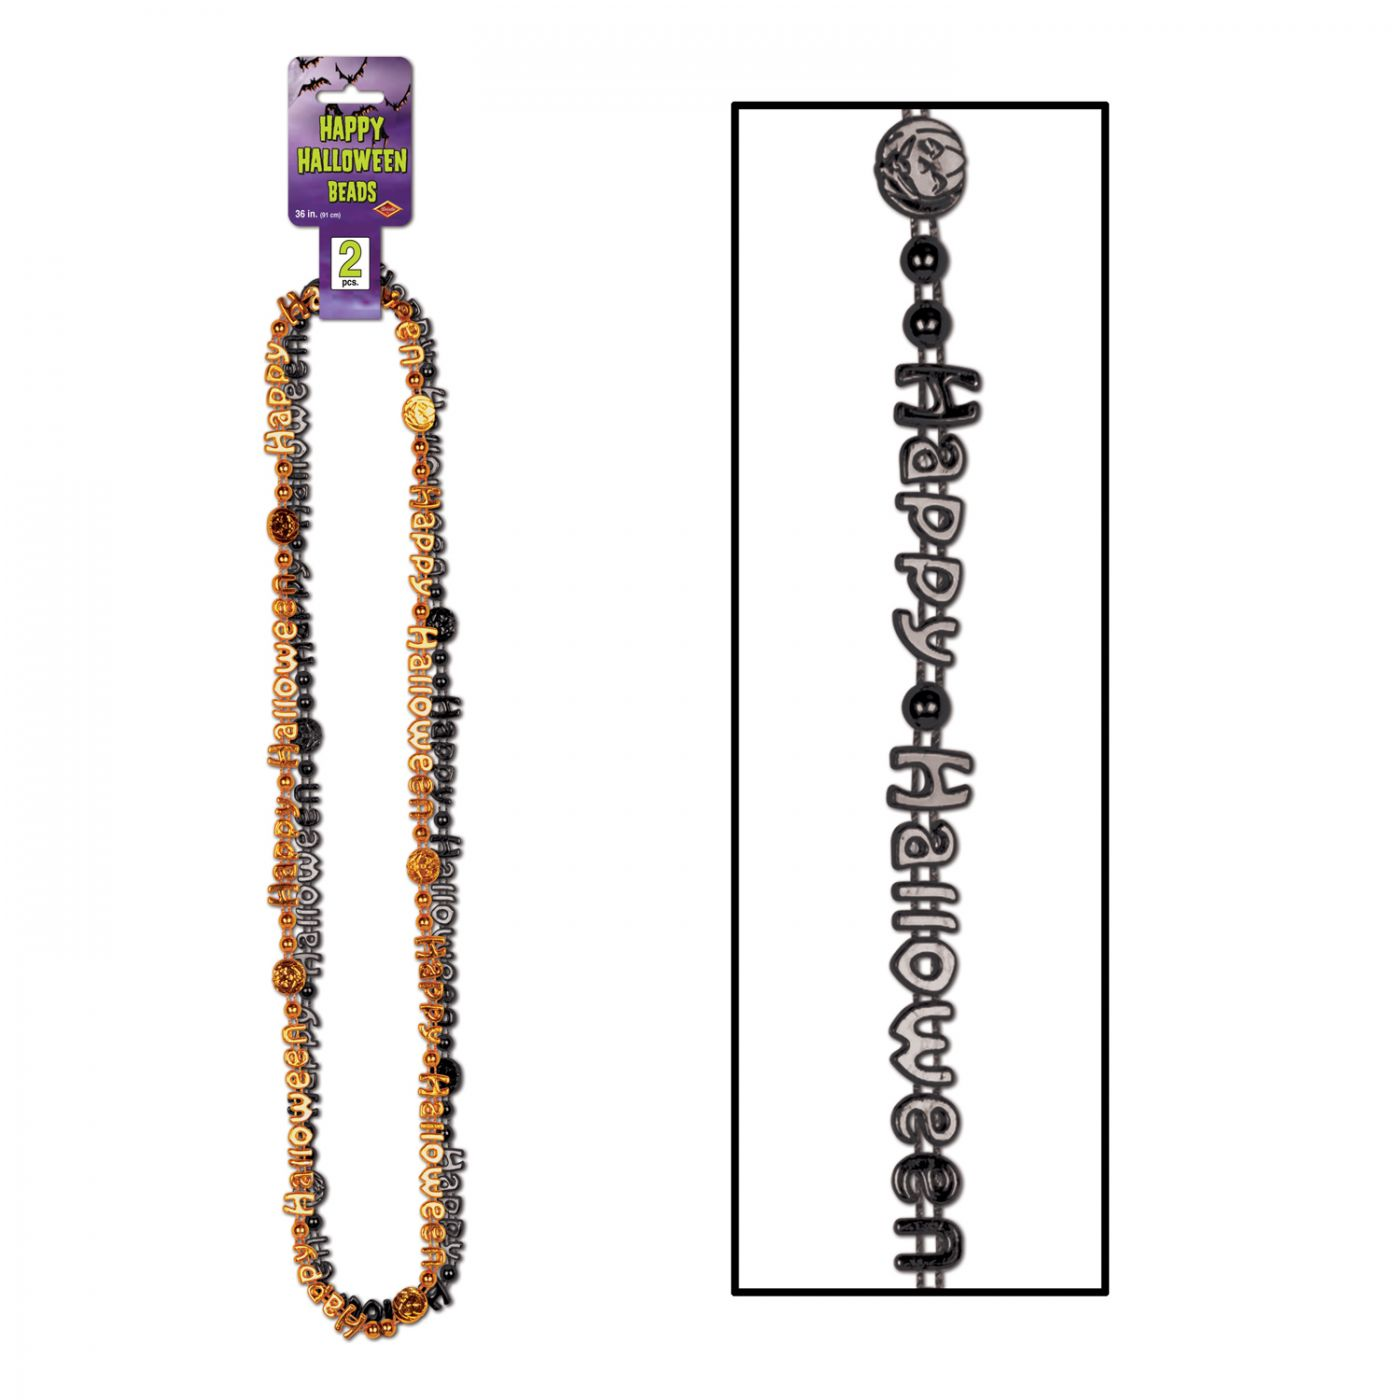 Happy Halloween Beads-Of-Expression image